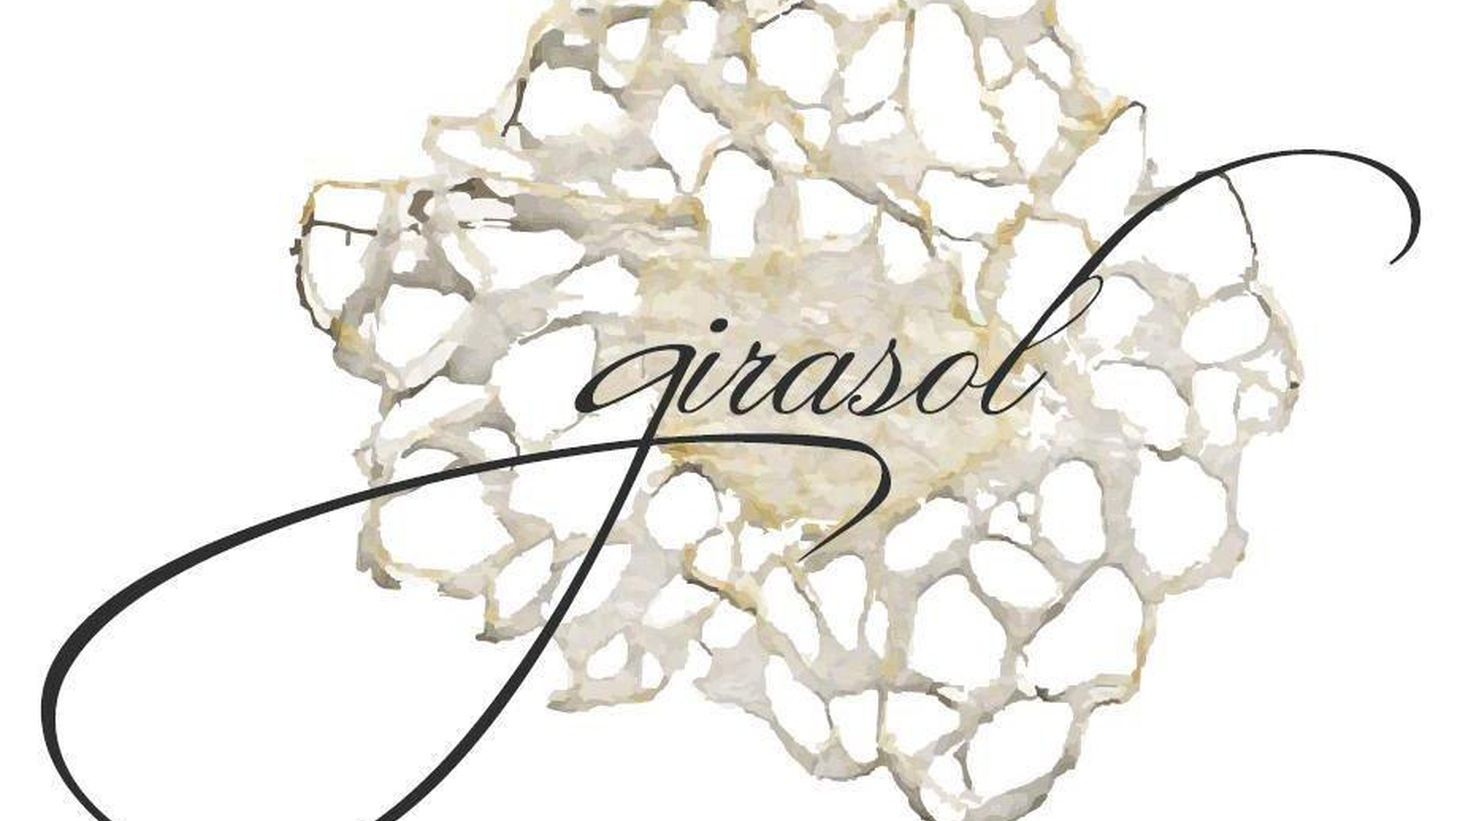 """Jonathan Gold reviews Girasol, the new restaurant from""""Top Chef""""alum,CJ Jacobson."""